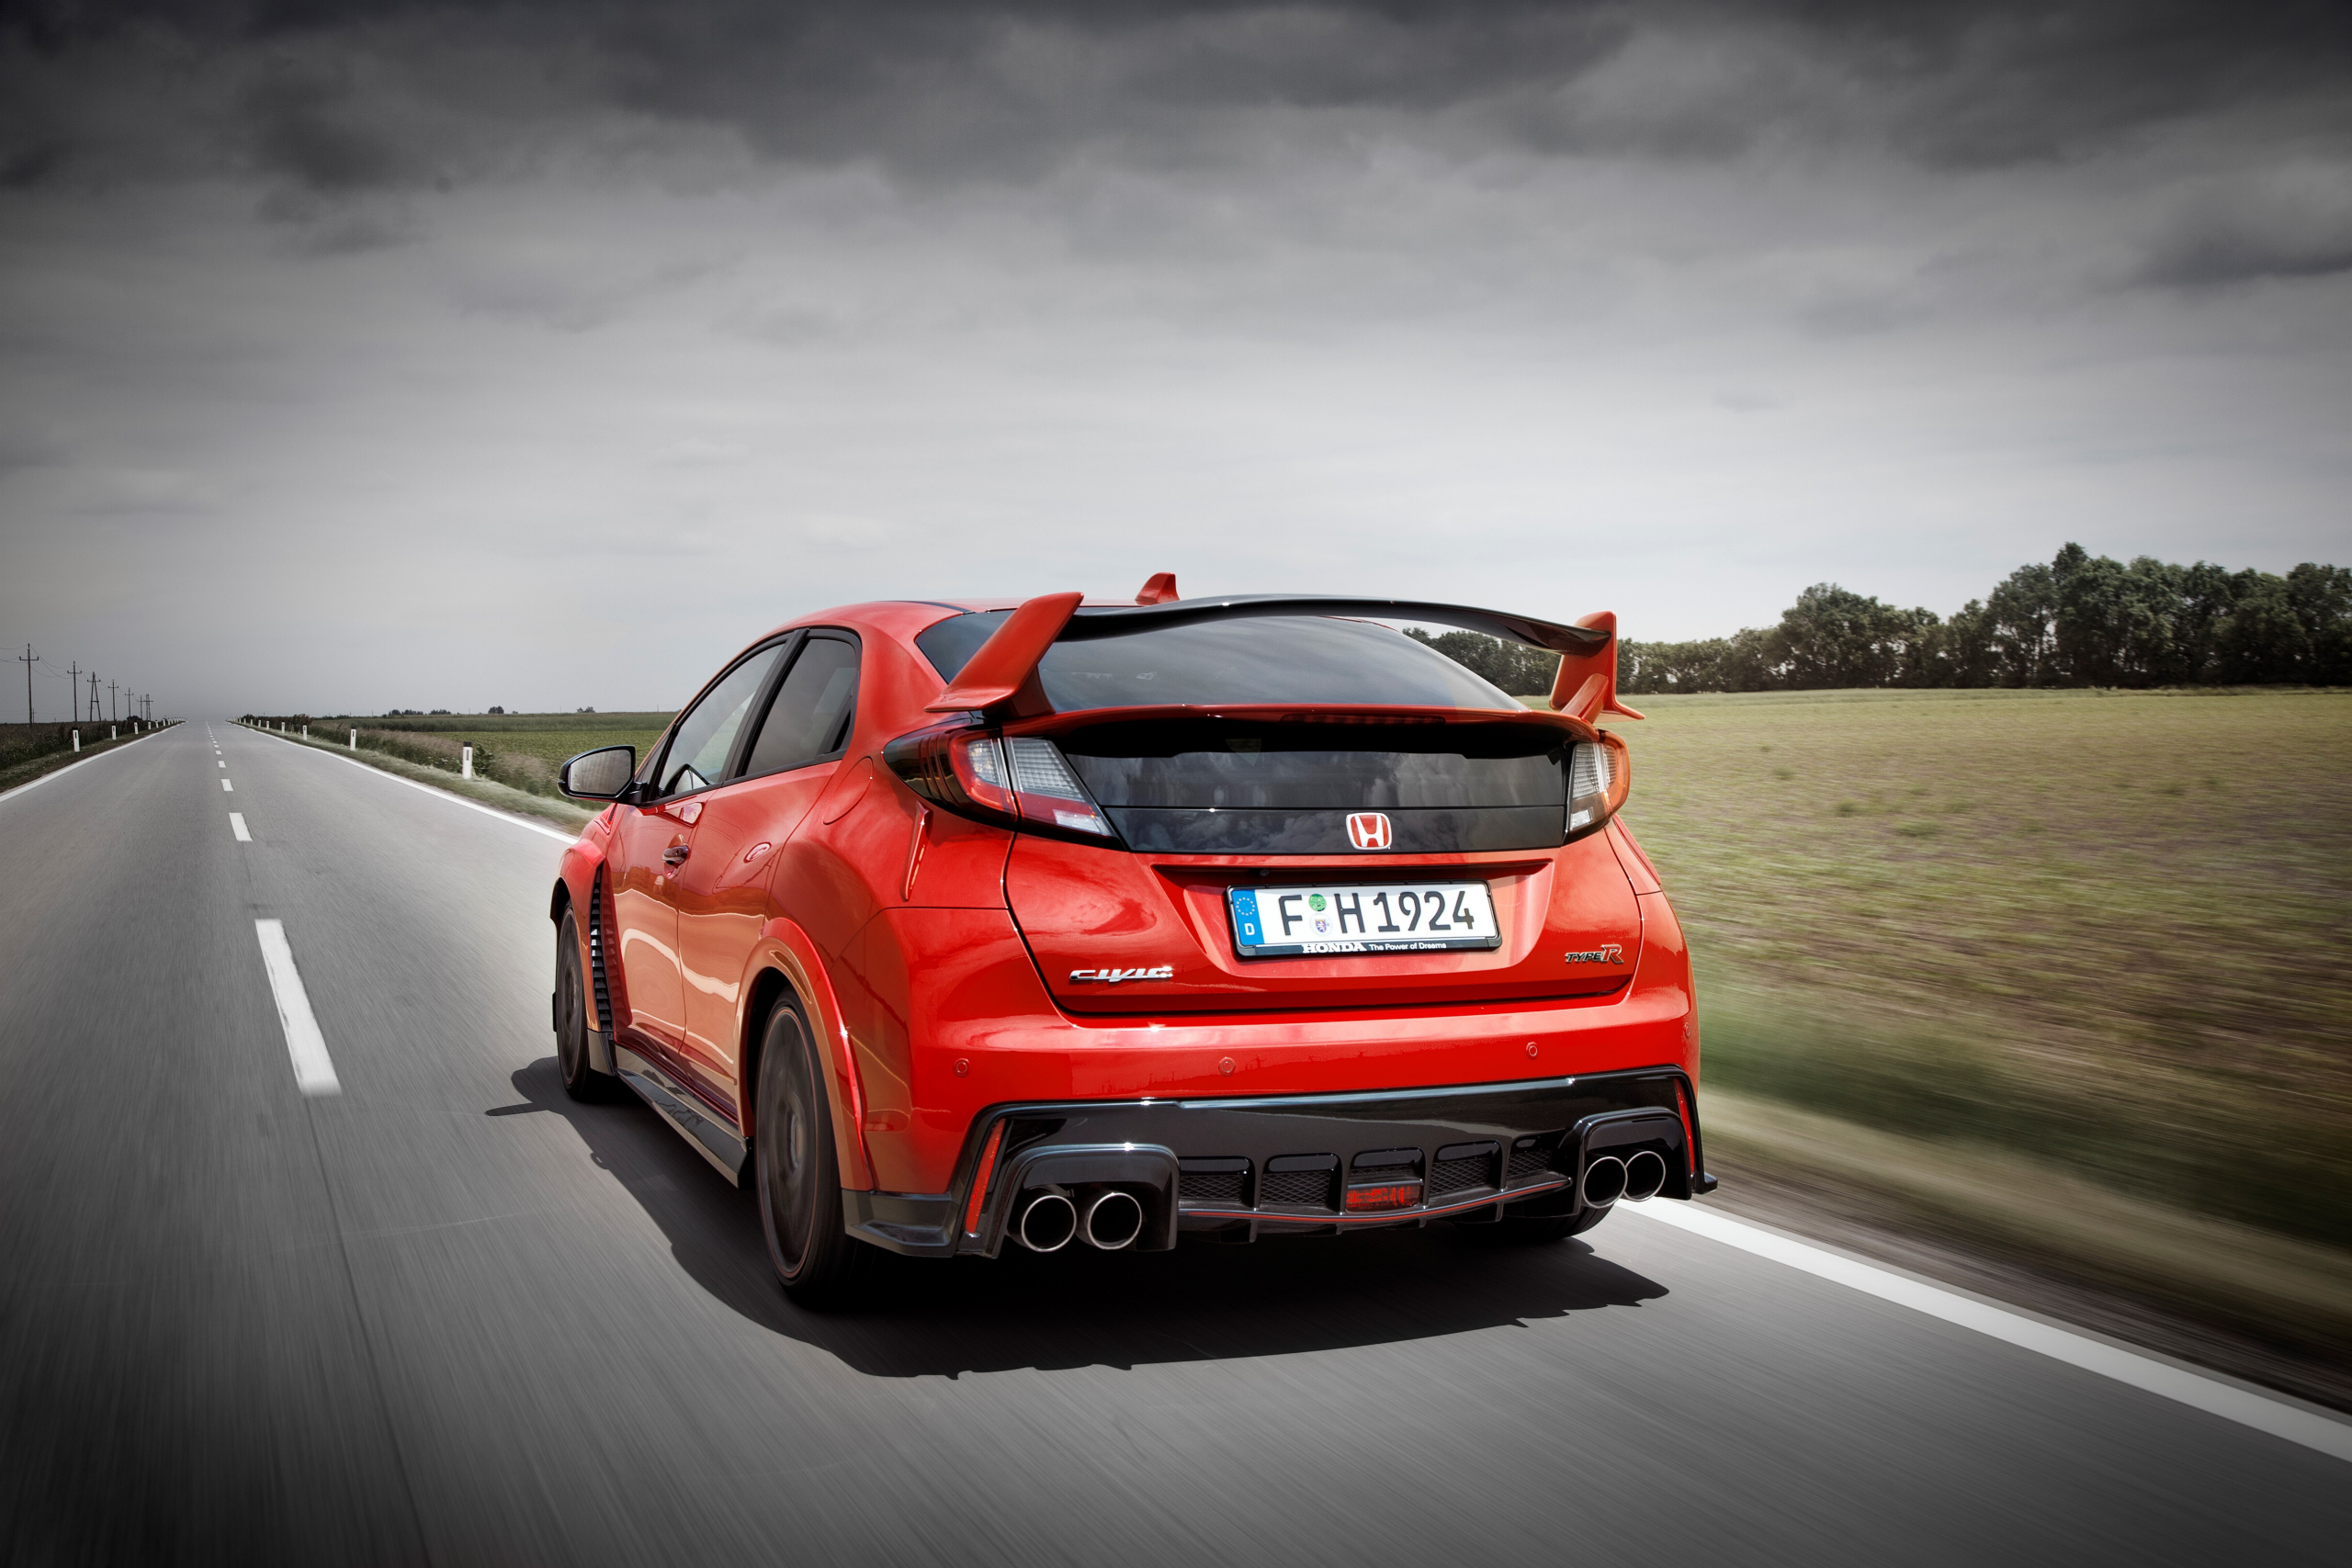 2015 Honda Civic Type R FK2 rear